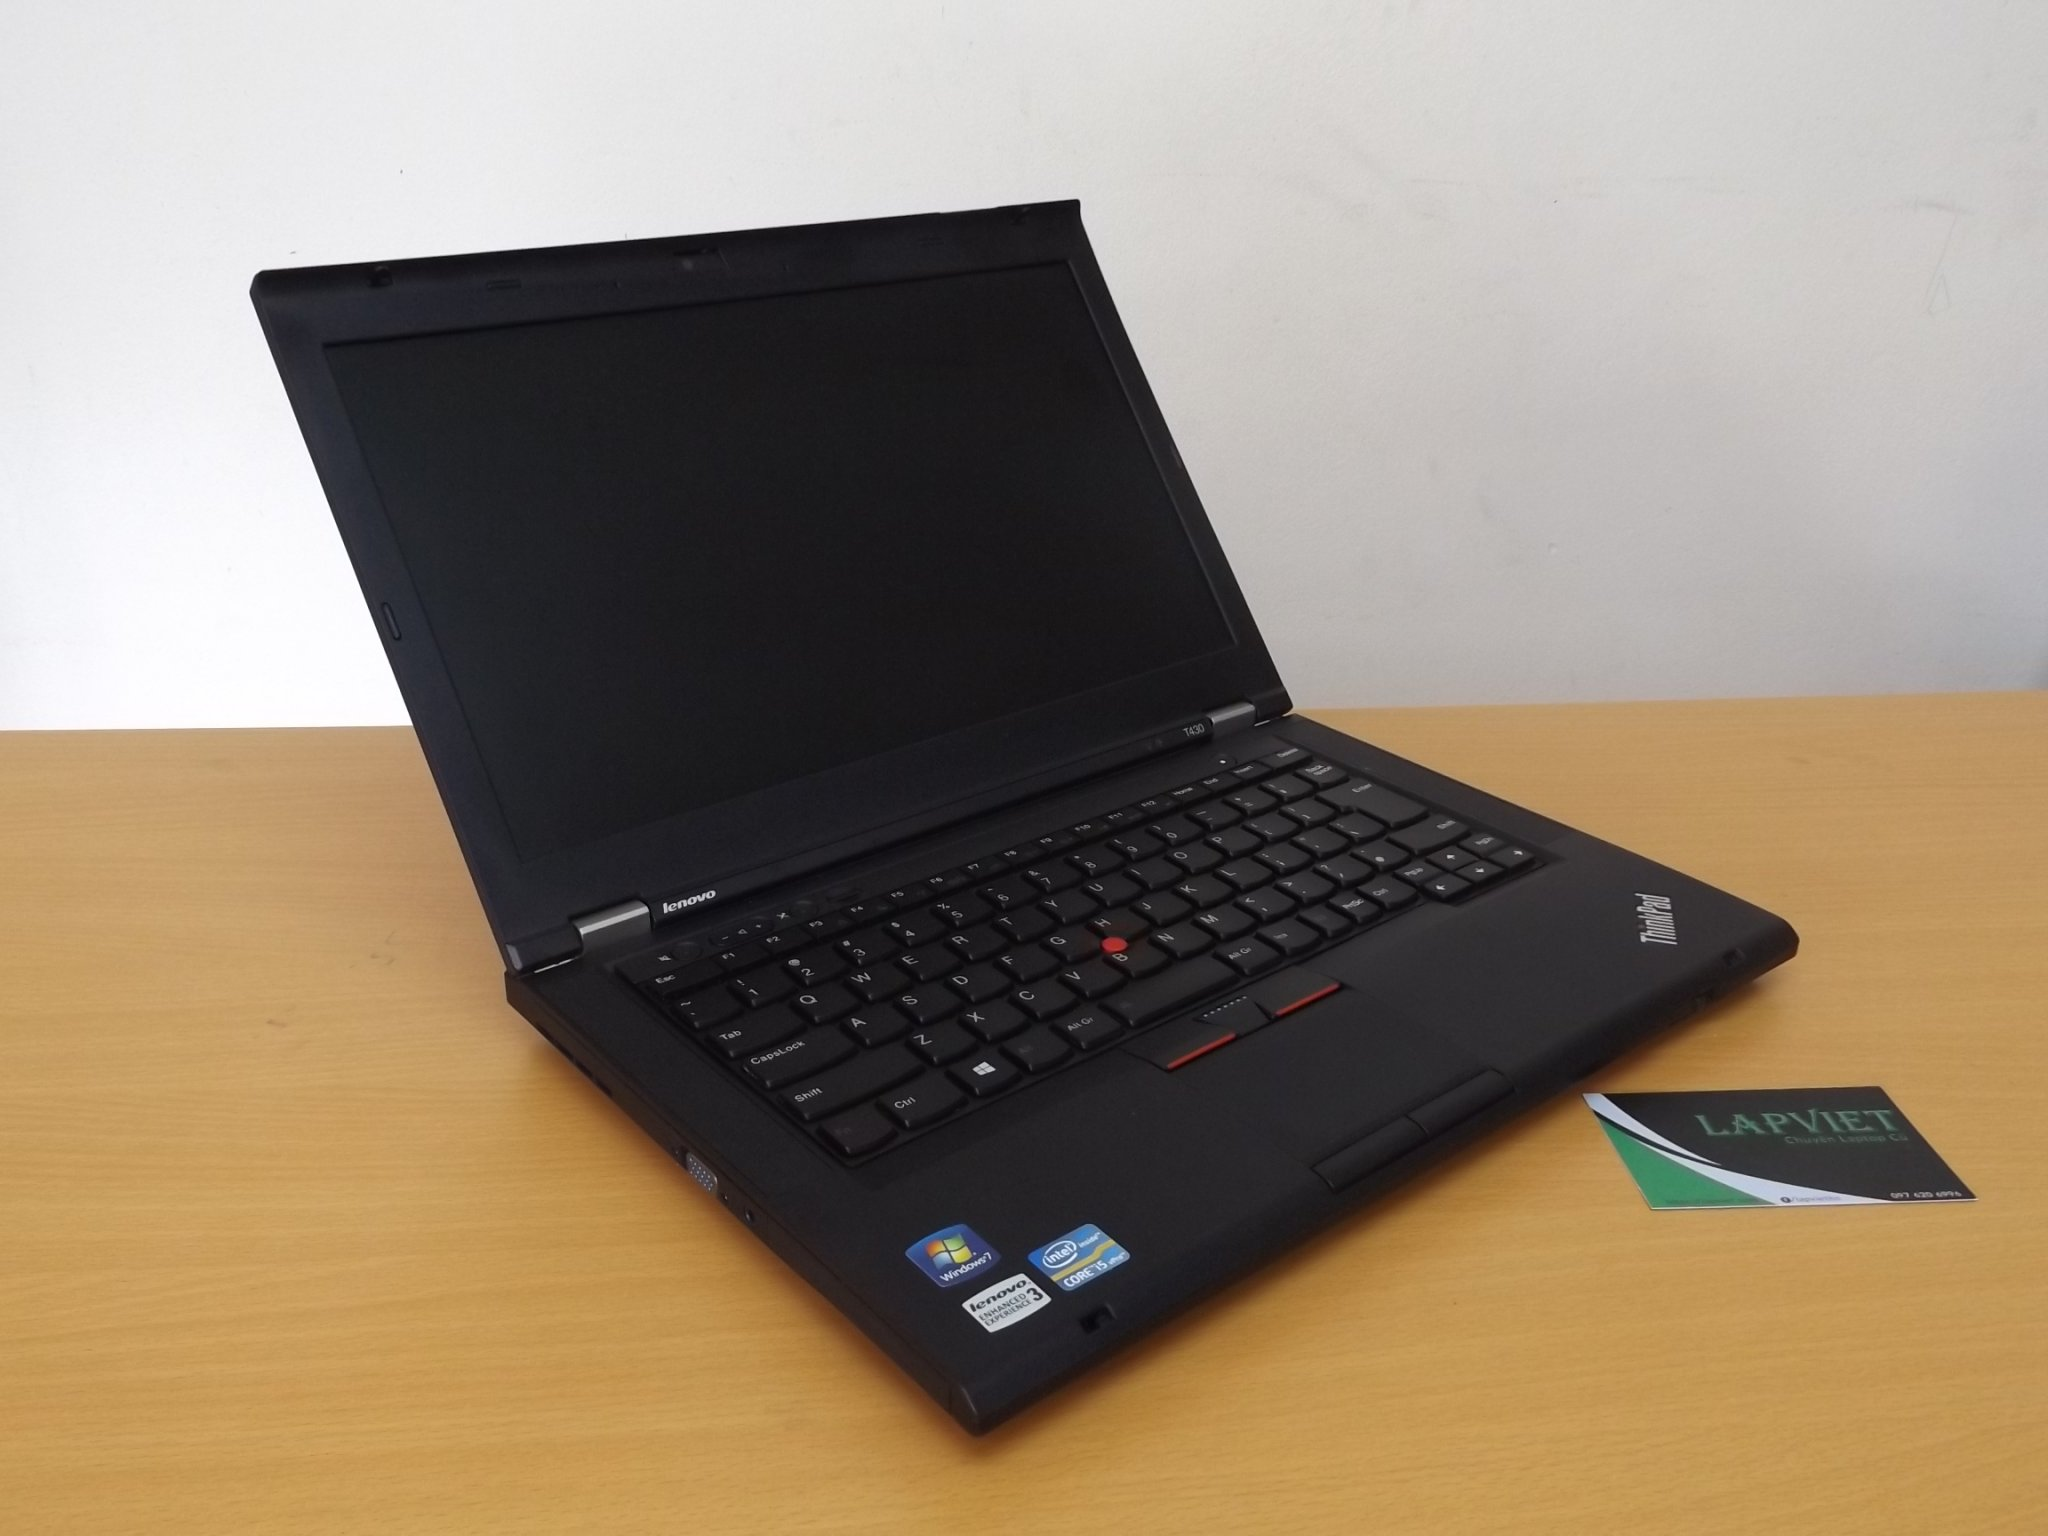 Lenovo Thinkpad T430.JPG